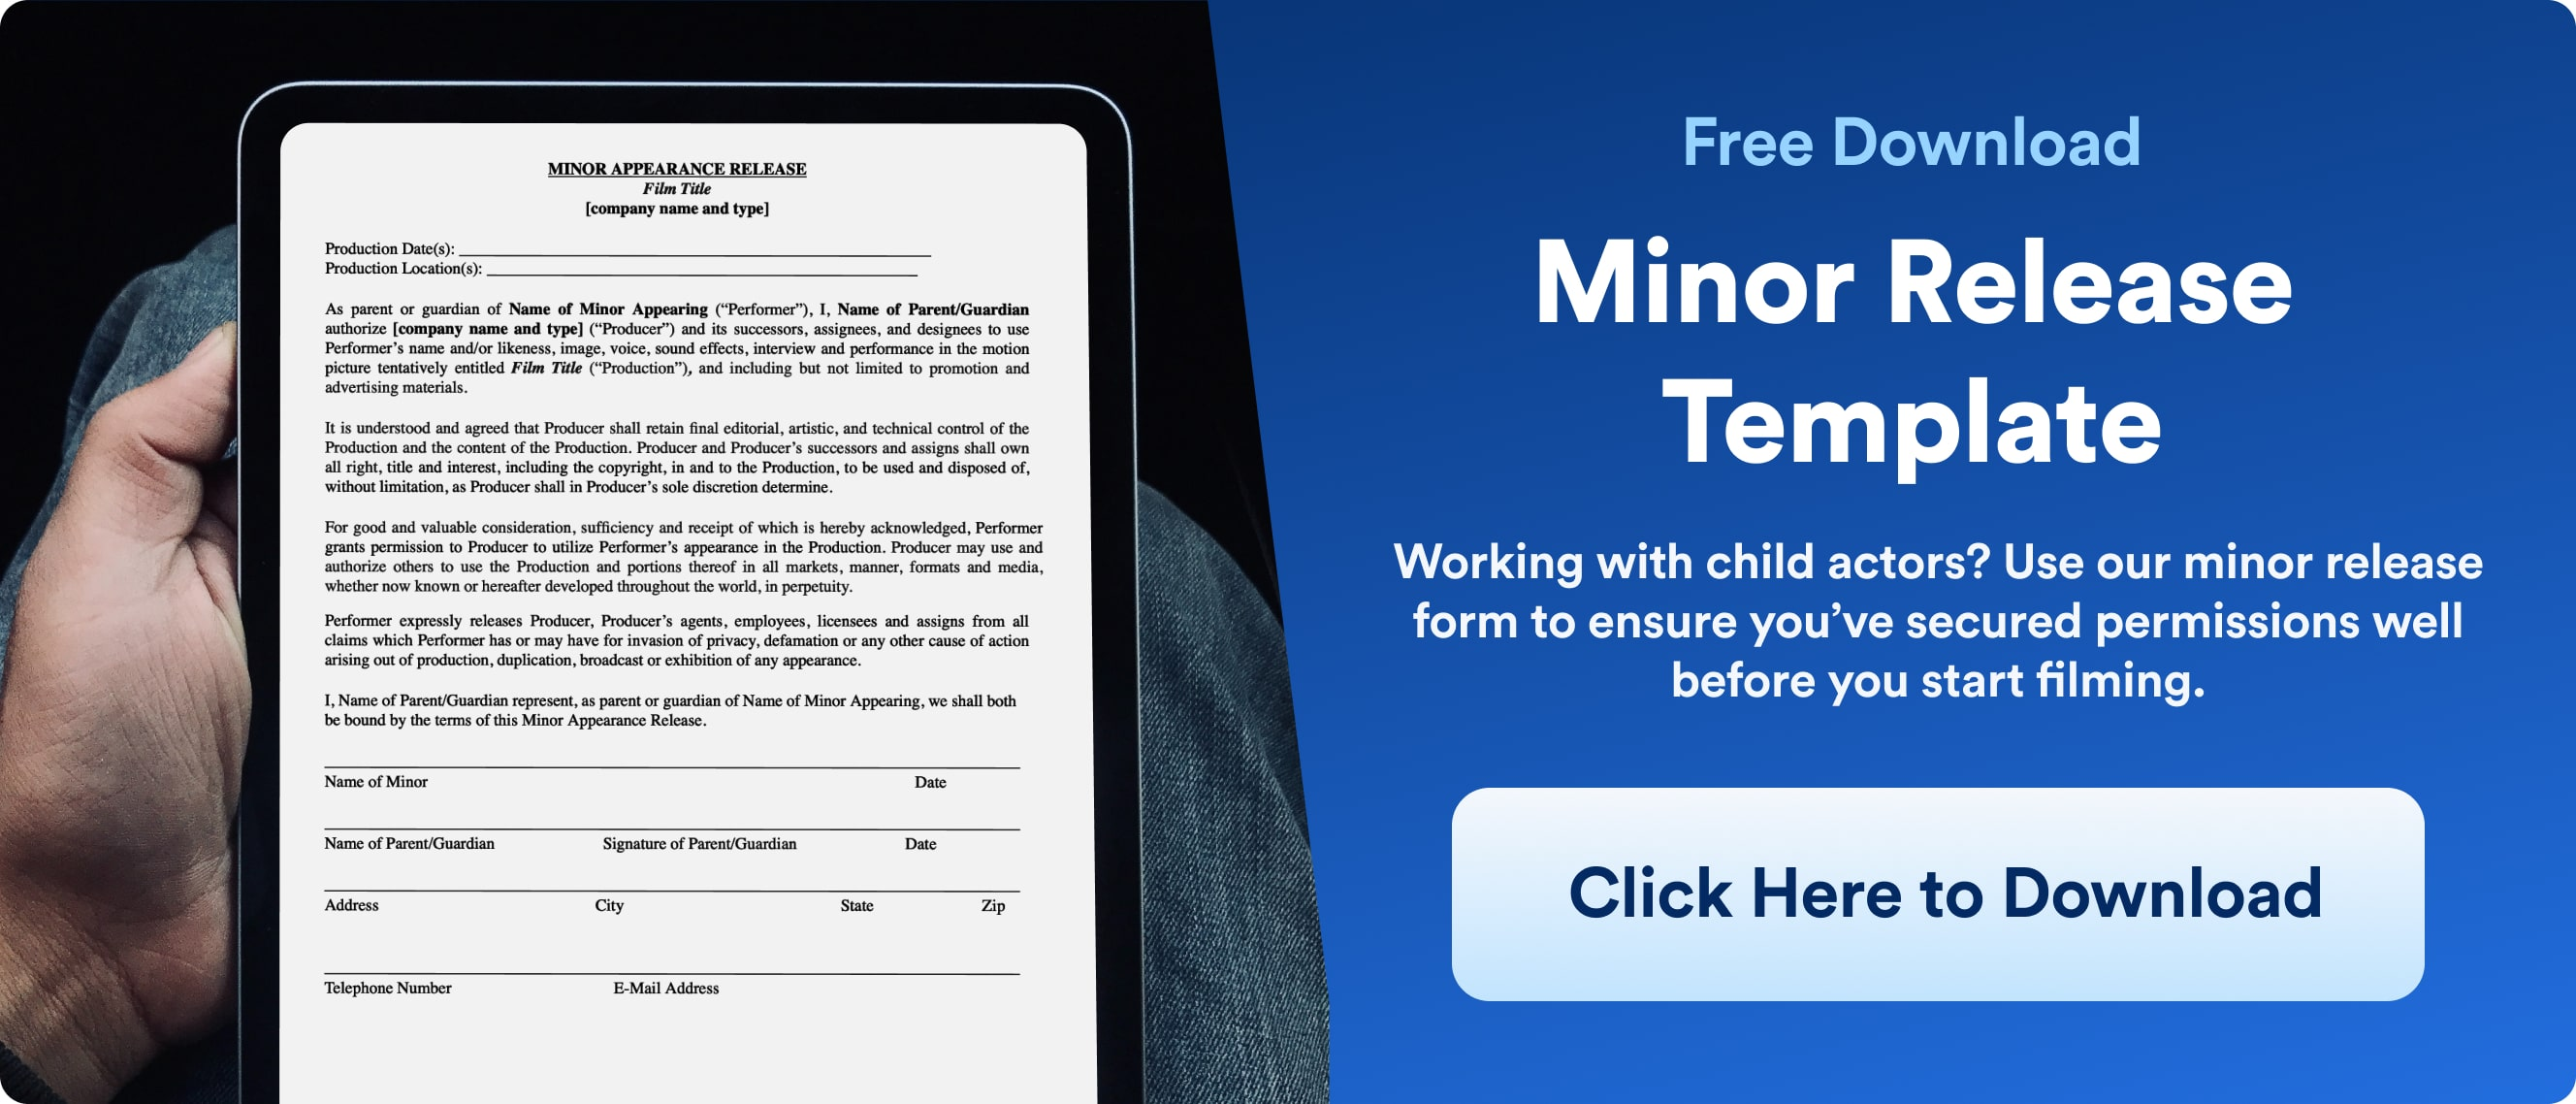 Child Actor Laws - Minor Release From Download - Wrapbook